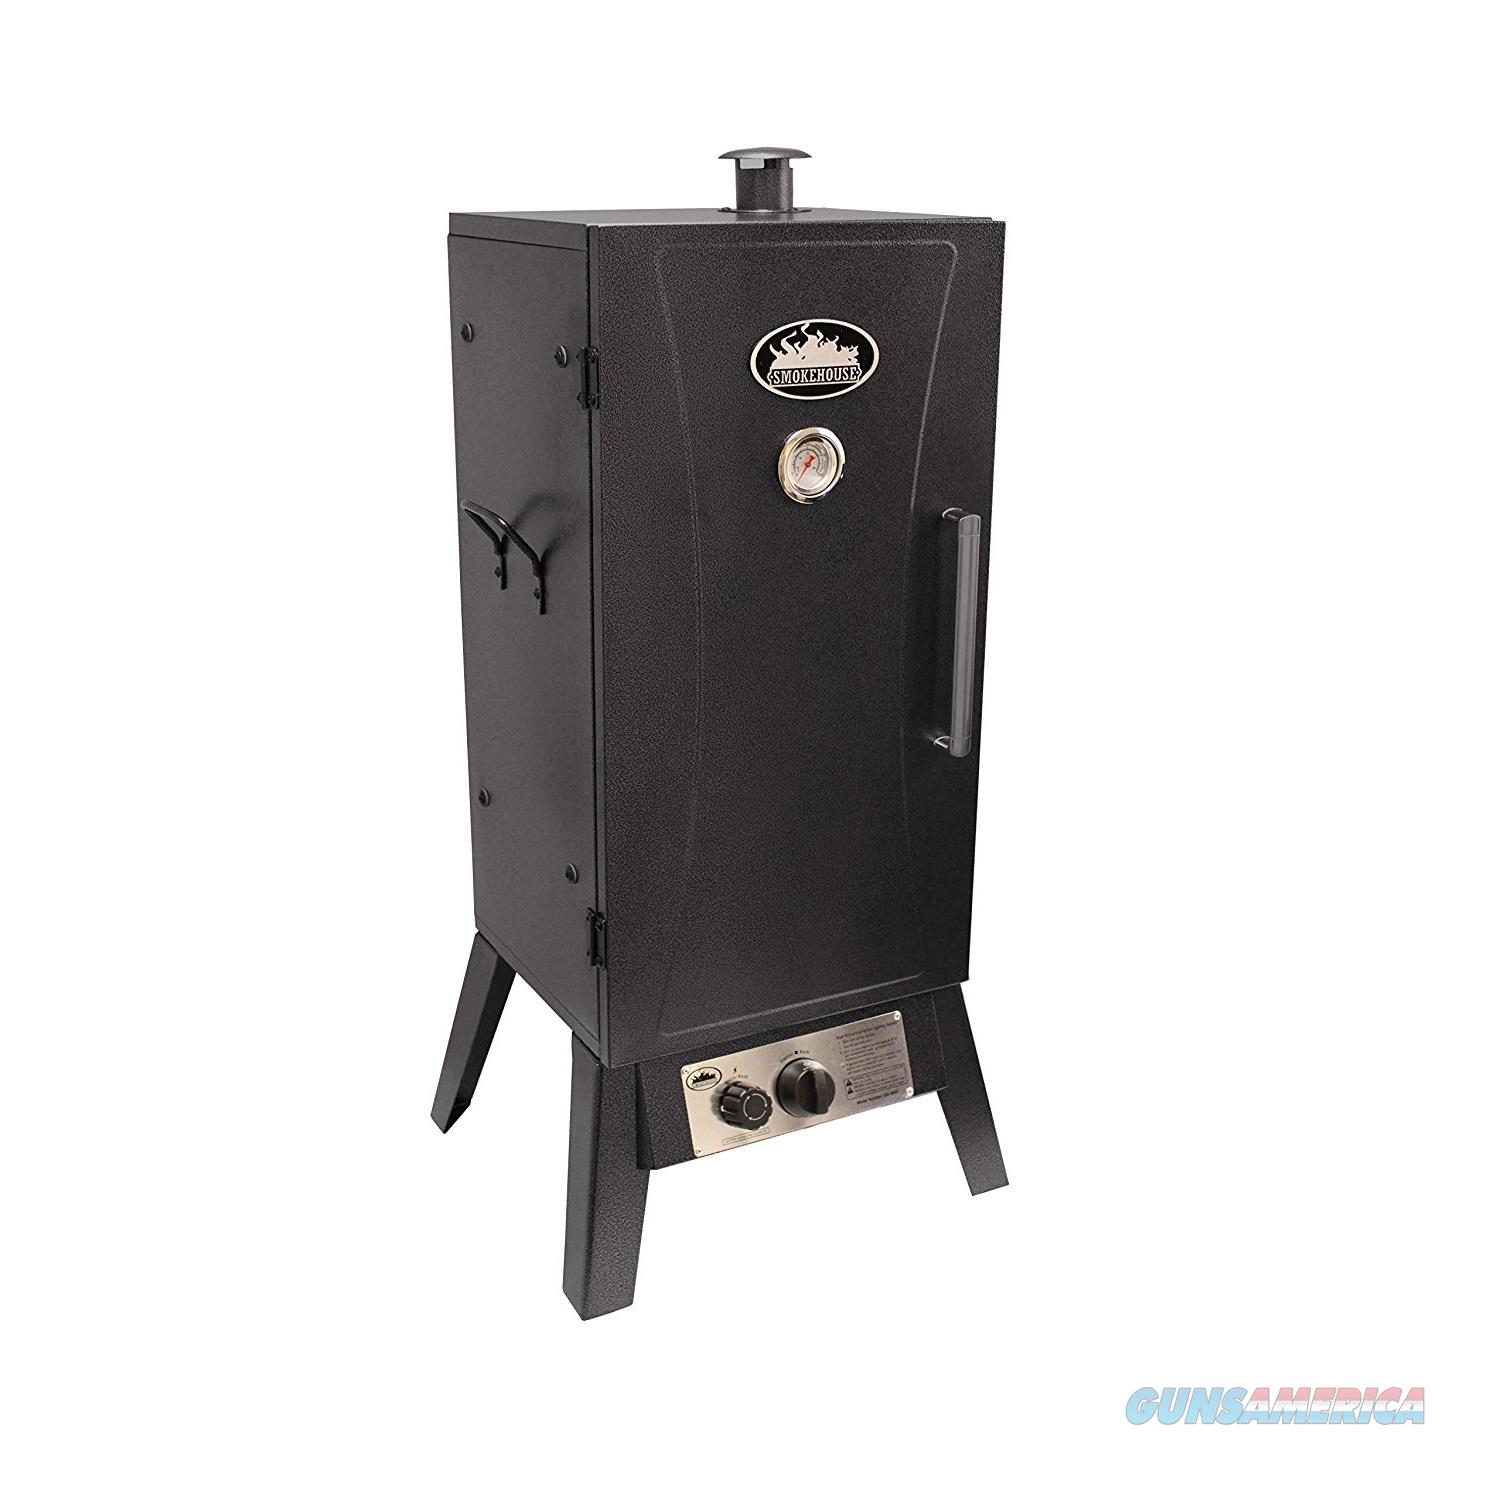 Smokehouse Products Outdoor Gas Smoker/Cooker - Silver 9933-000-SILV  Non-Guns > Fishing/Spearfishing